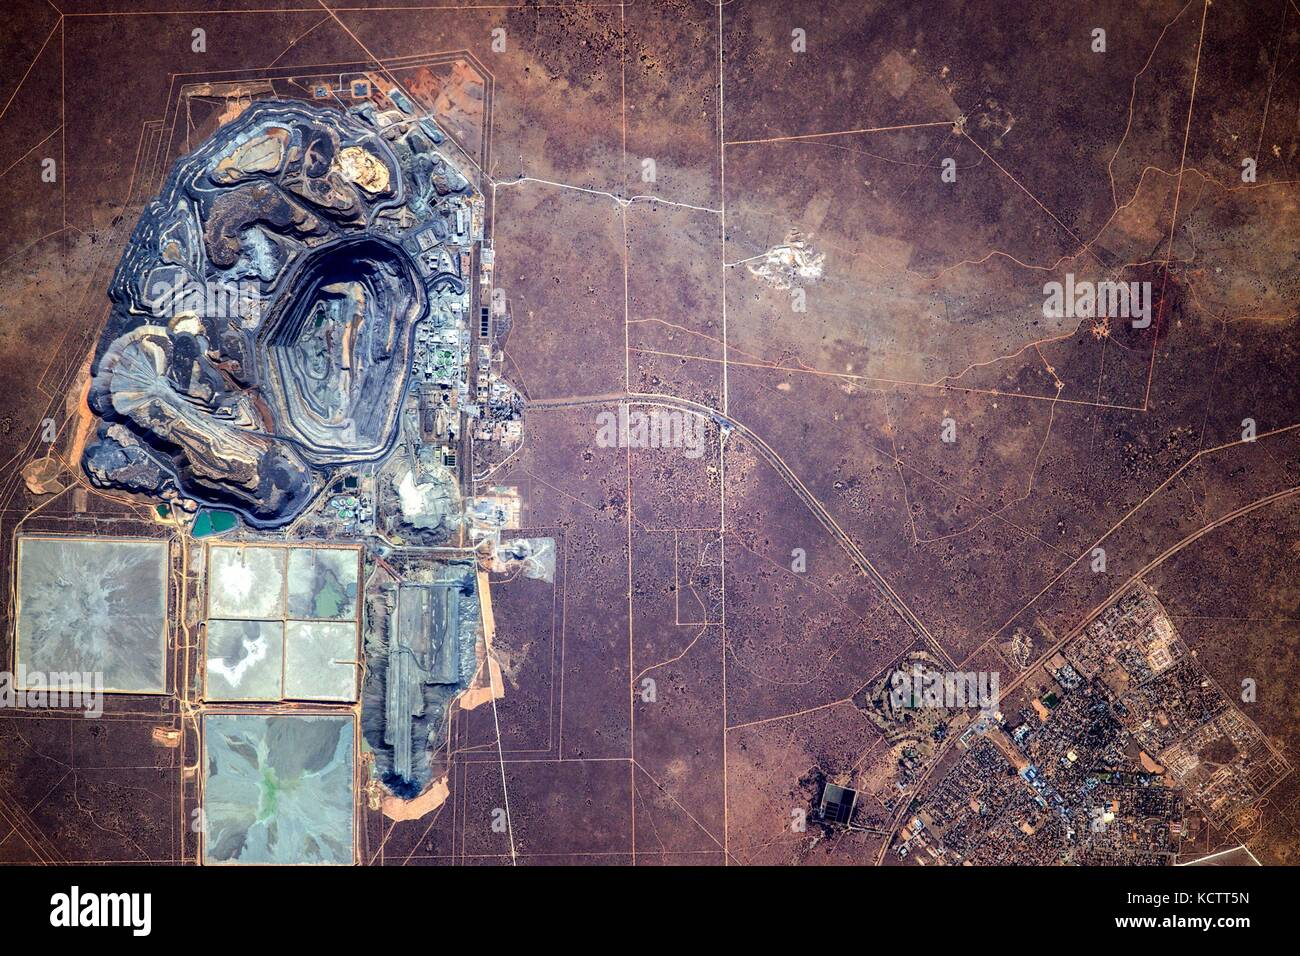 View from the International Space Station of the massive Jwaneng diamond mine in Botswana from Earth Orbit. - Stock Image